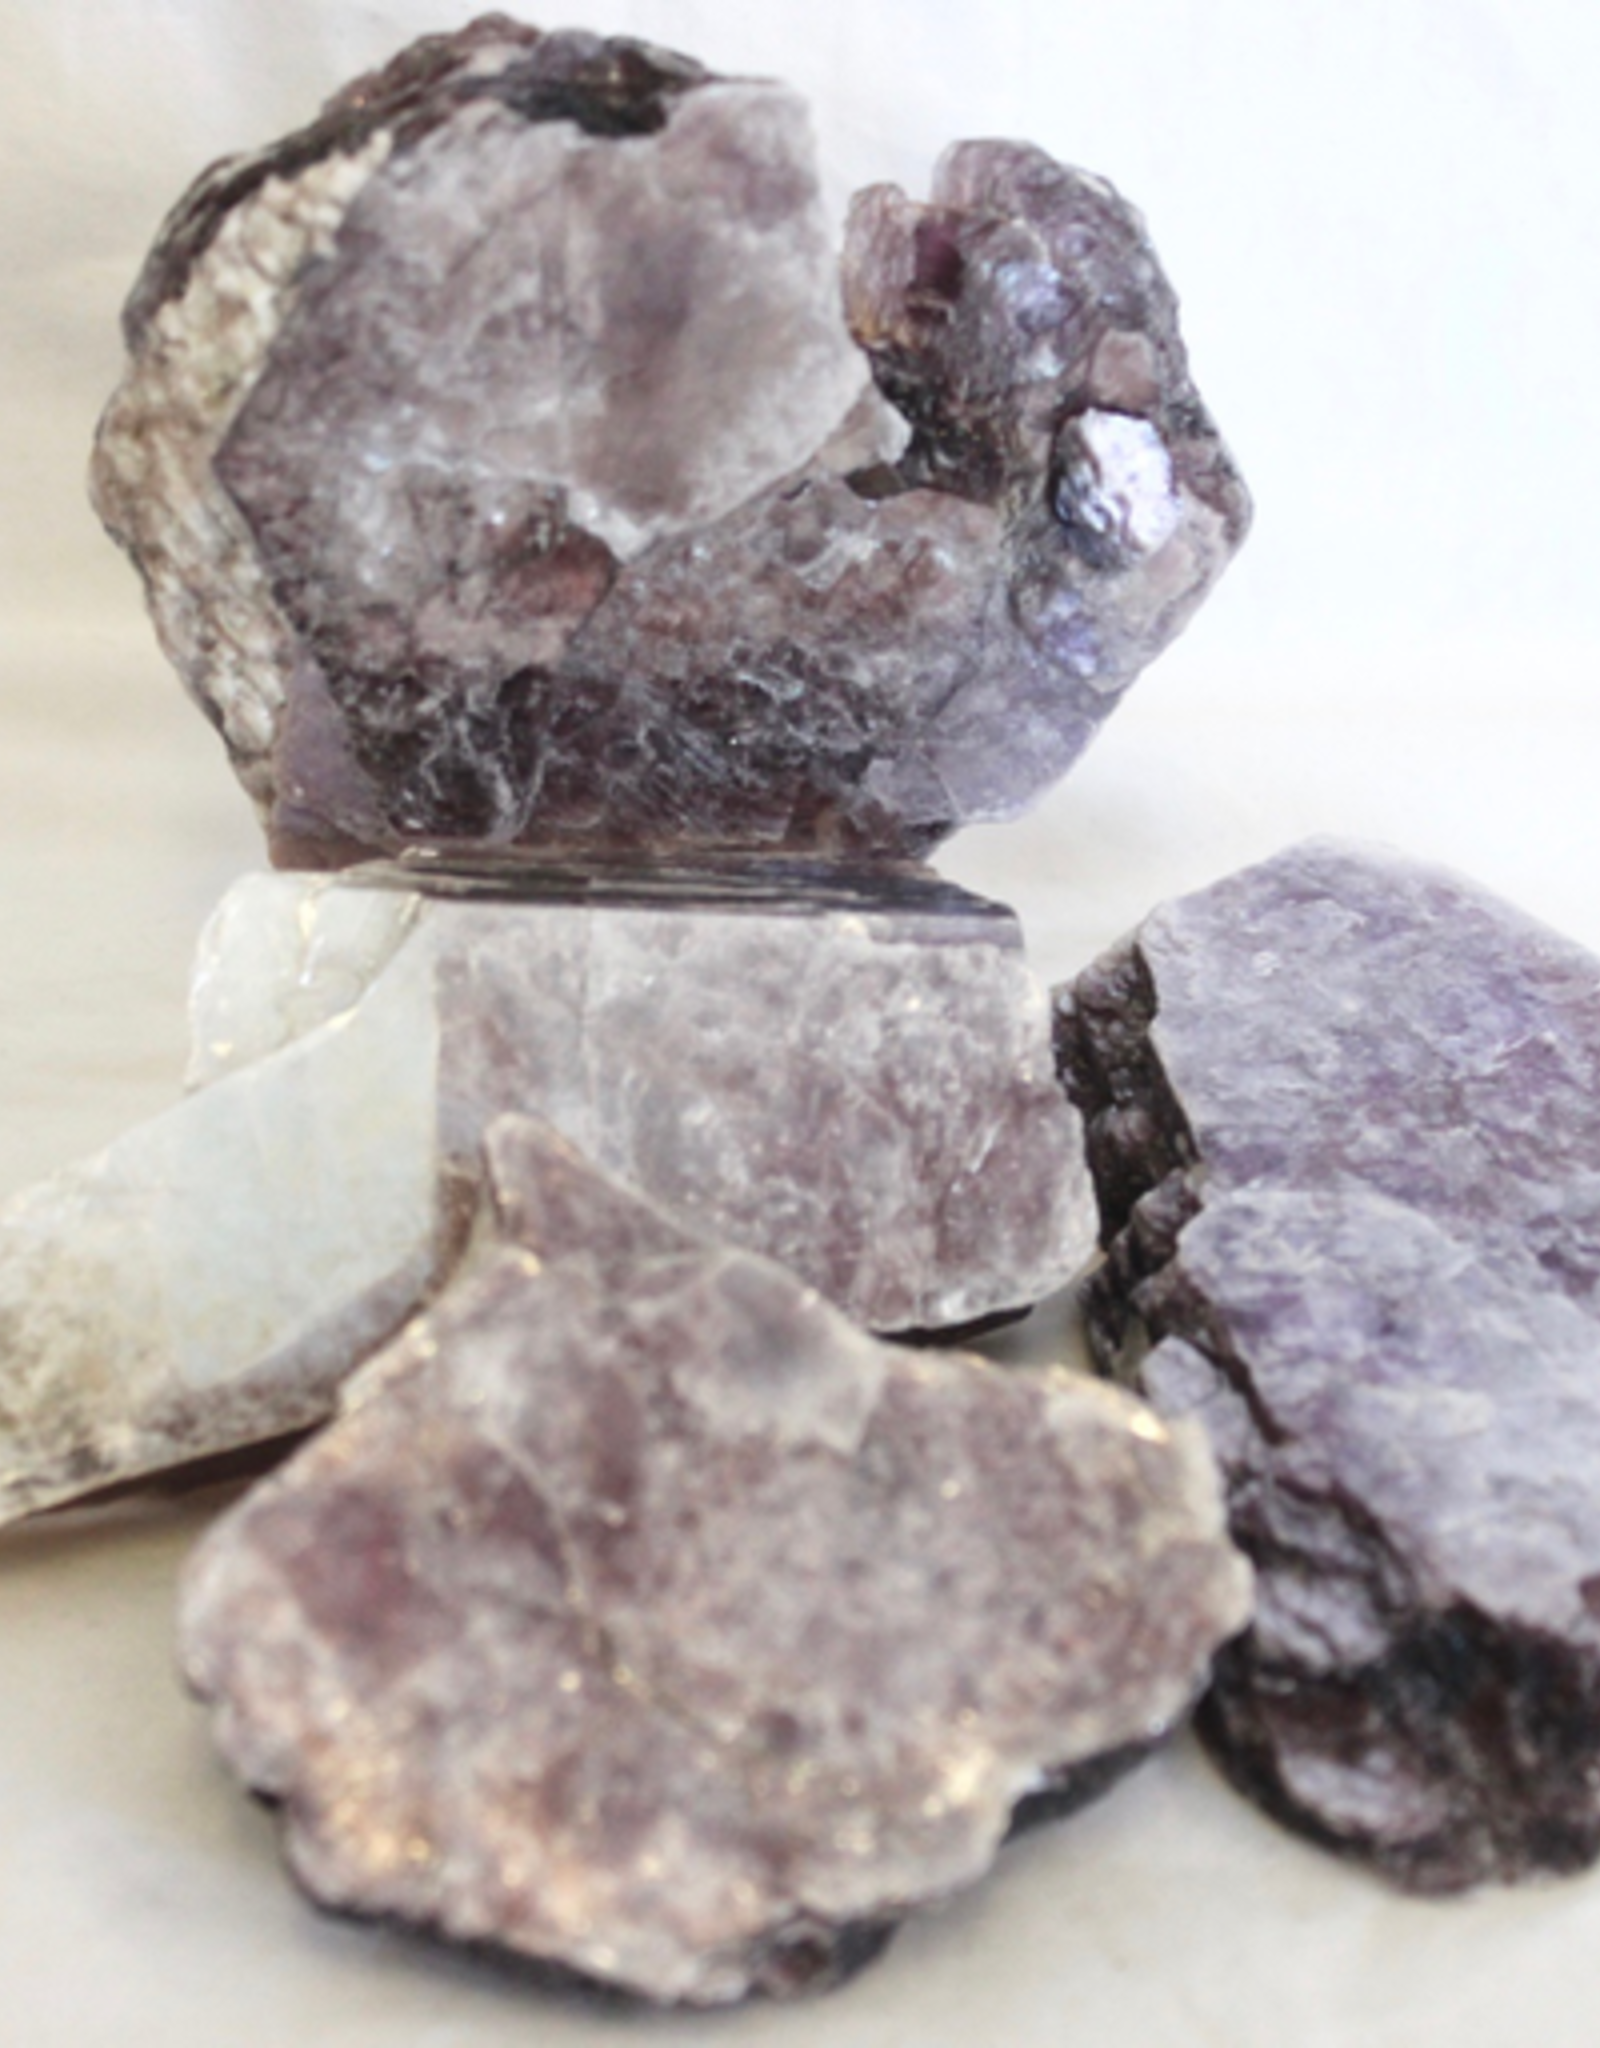 Lepidolite Slabs with Muscovite